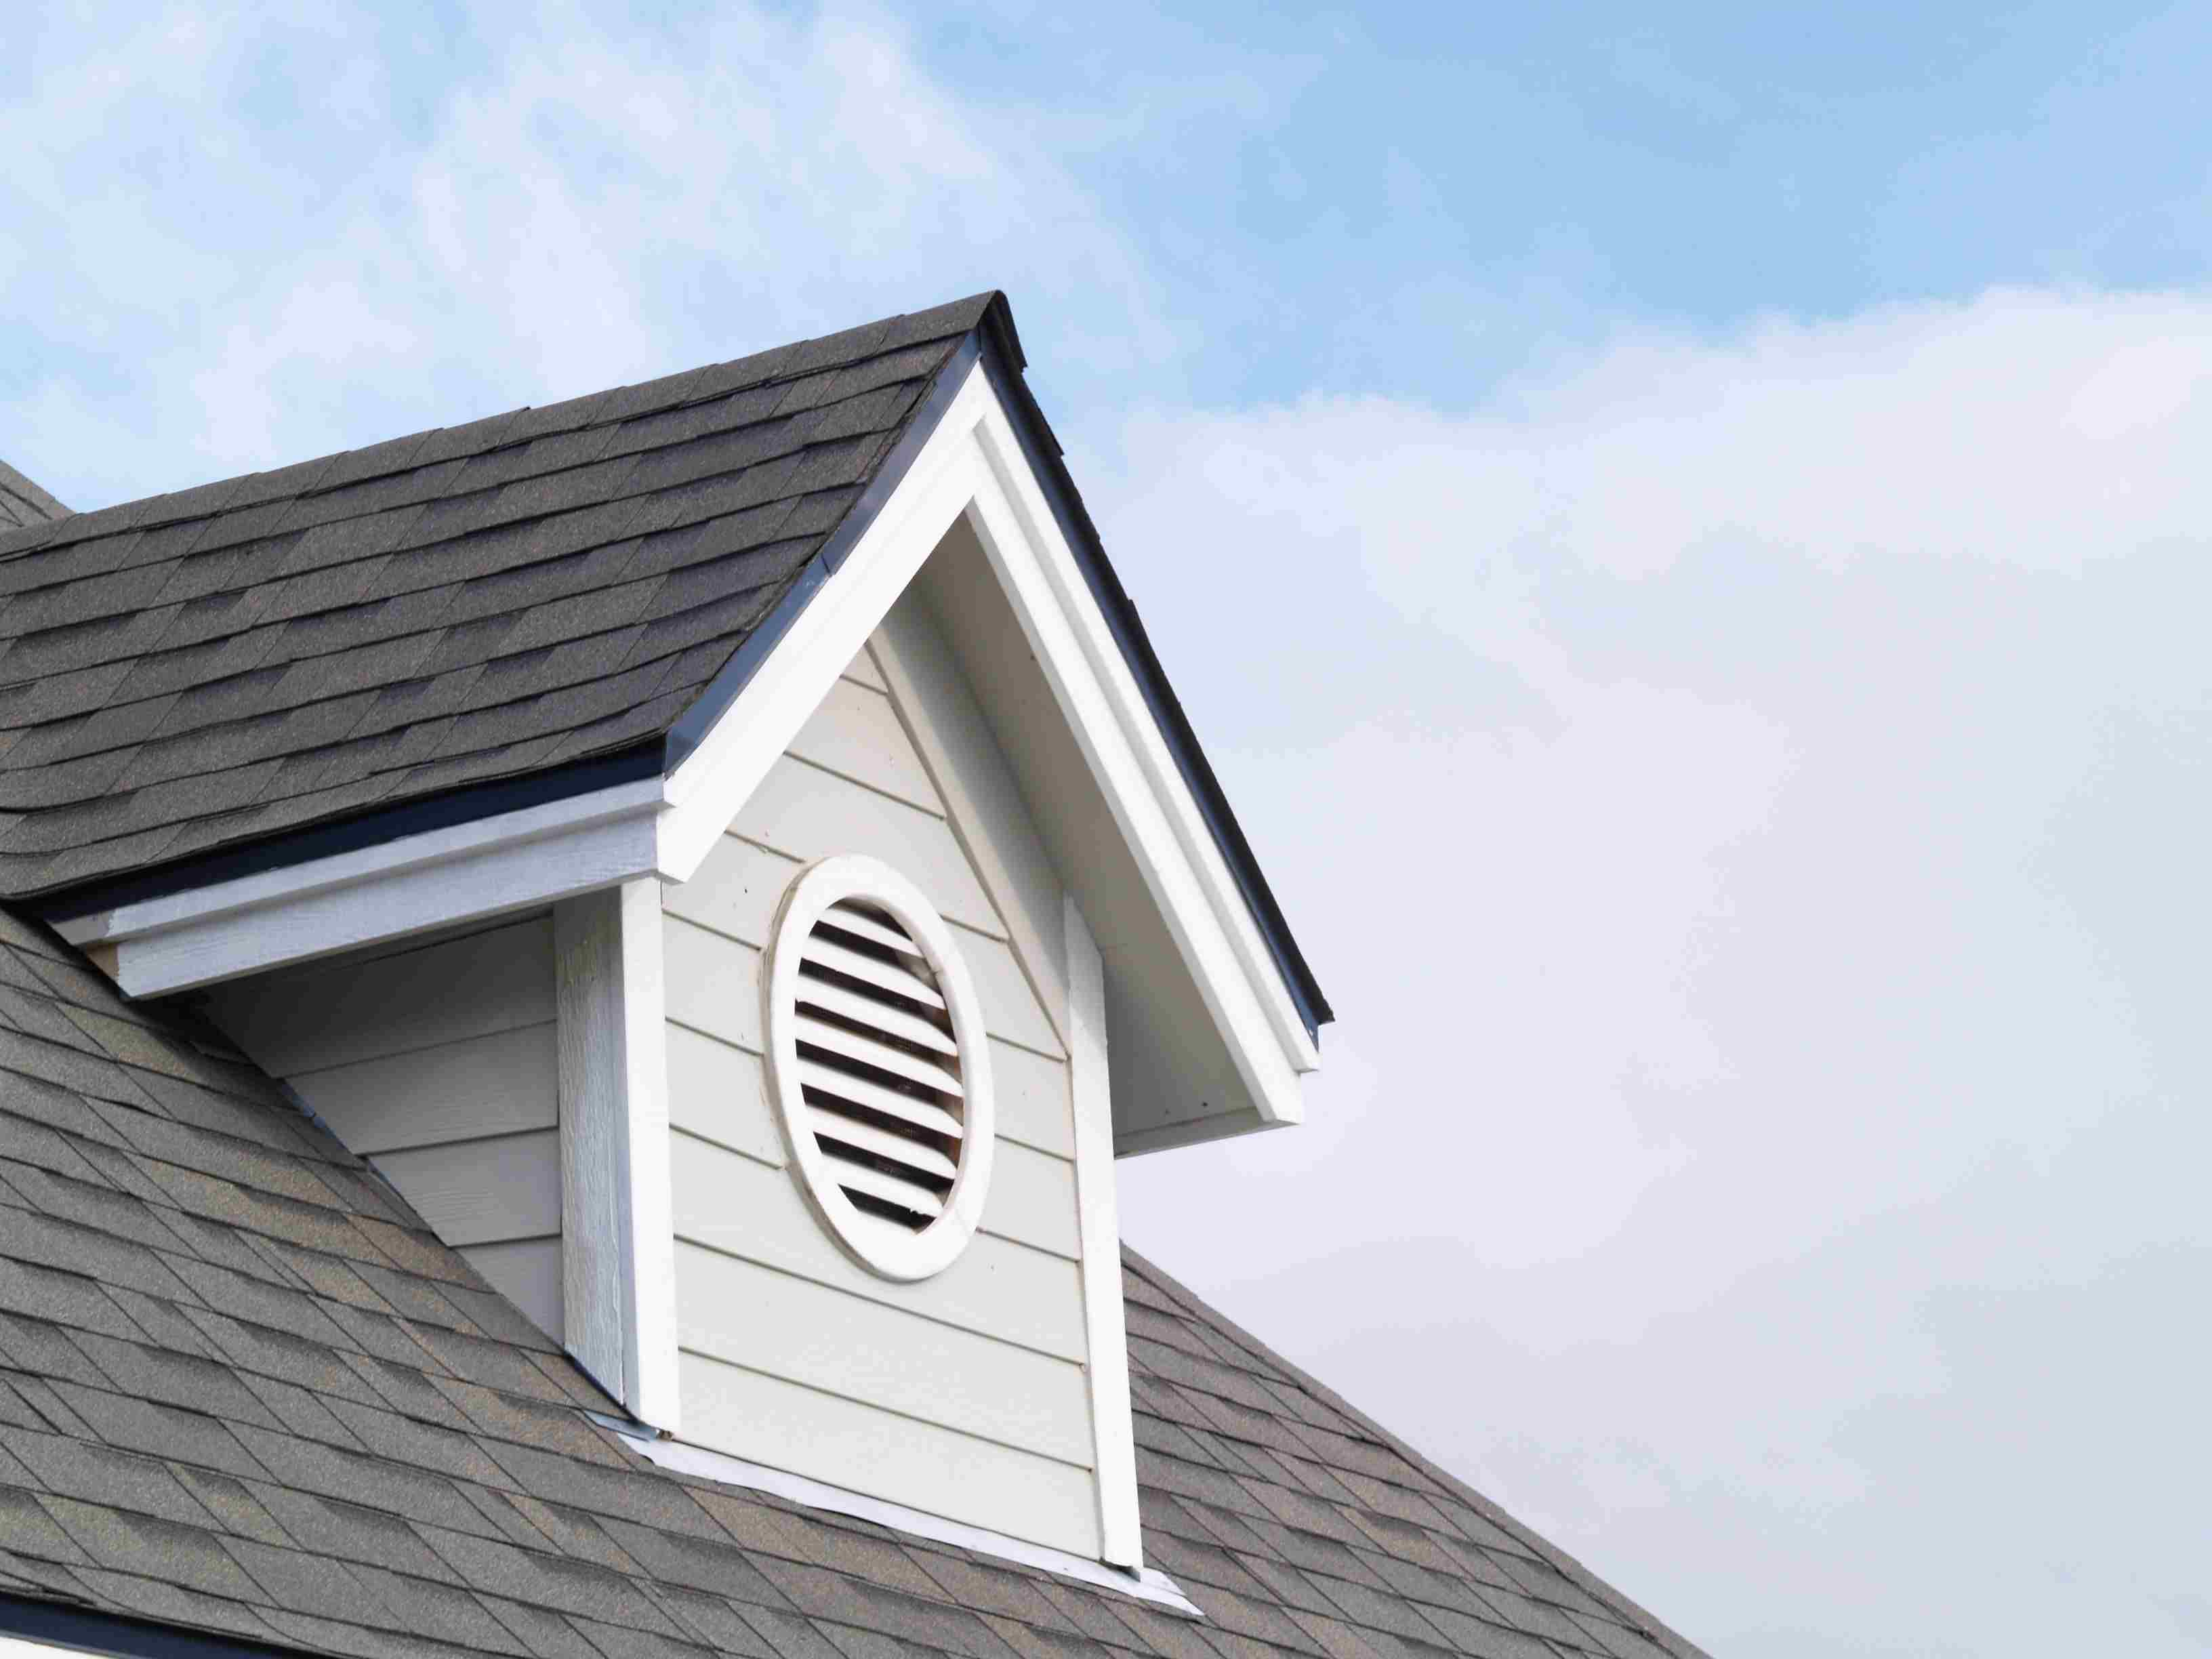 Exterior view of an attic vent